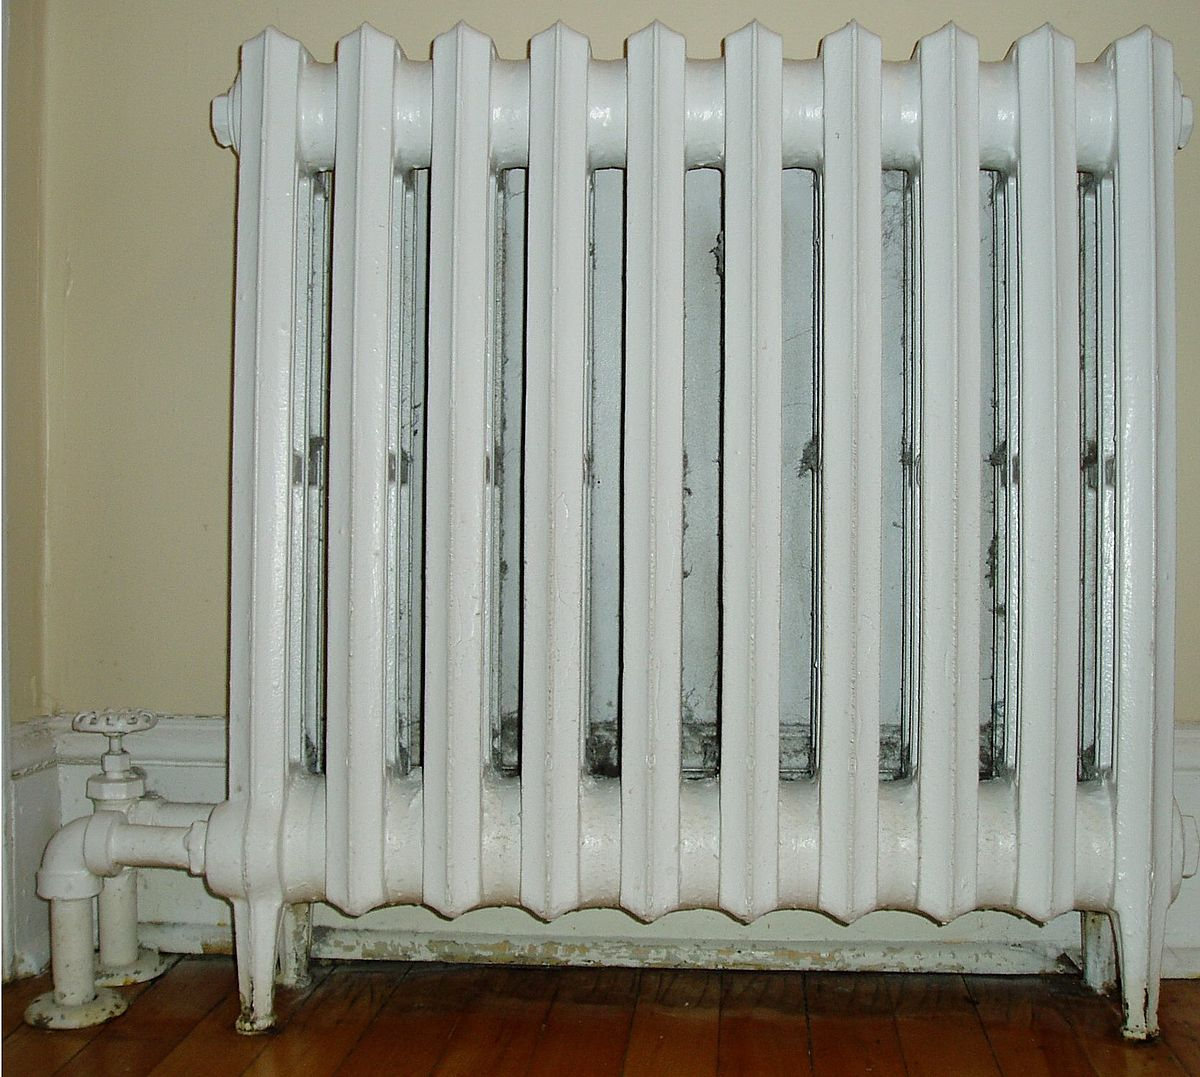 Radiator heating wikipedia for Types of home heating